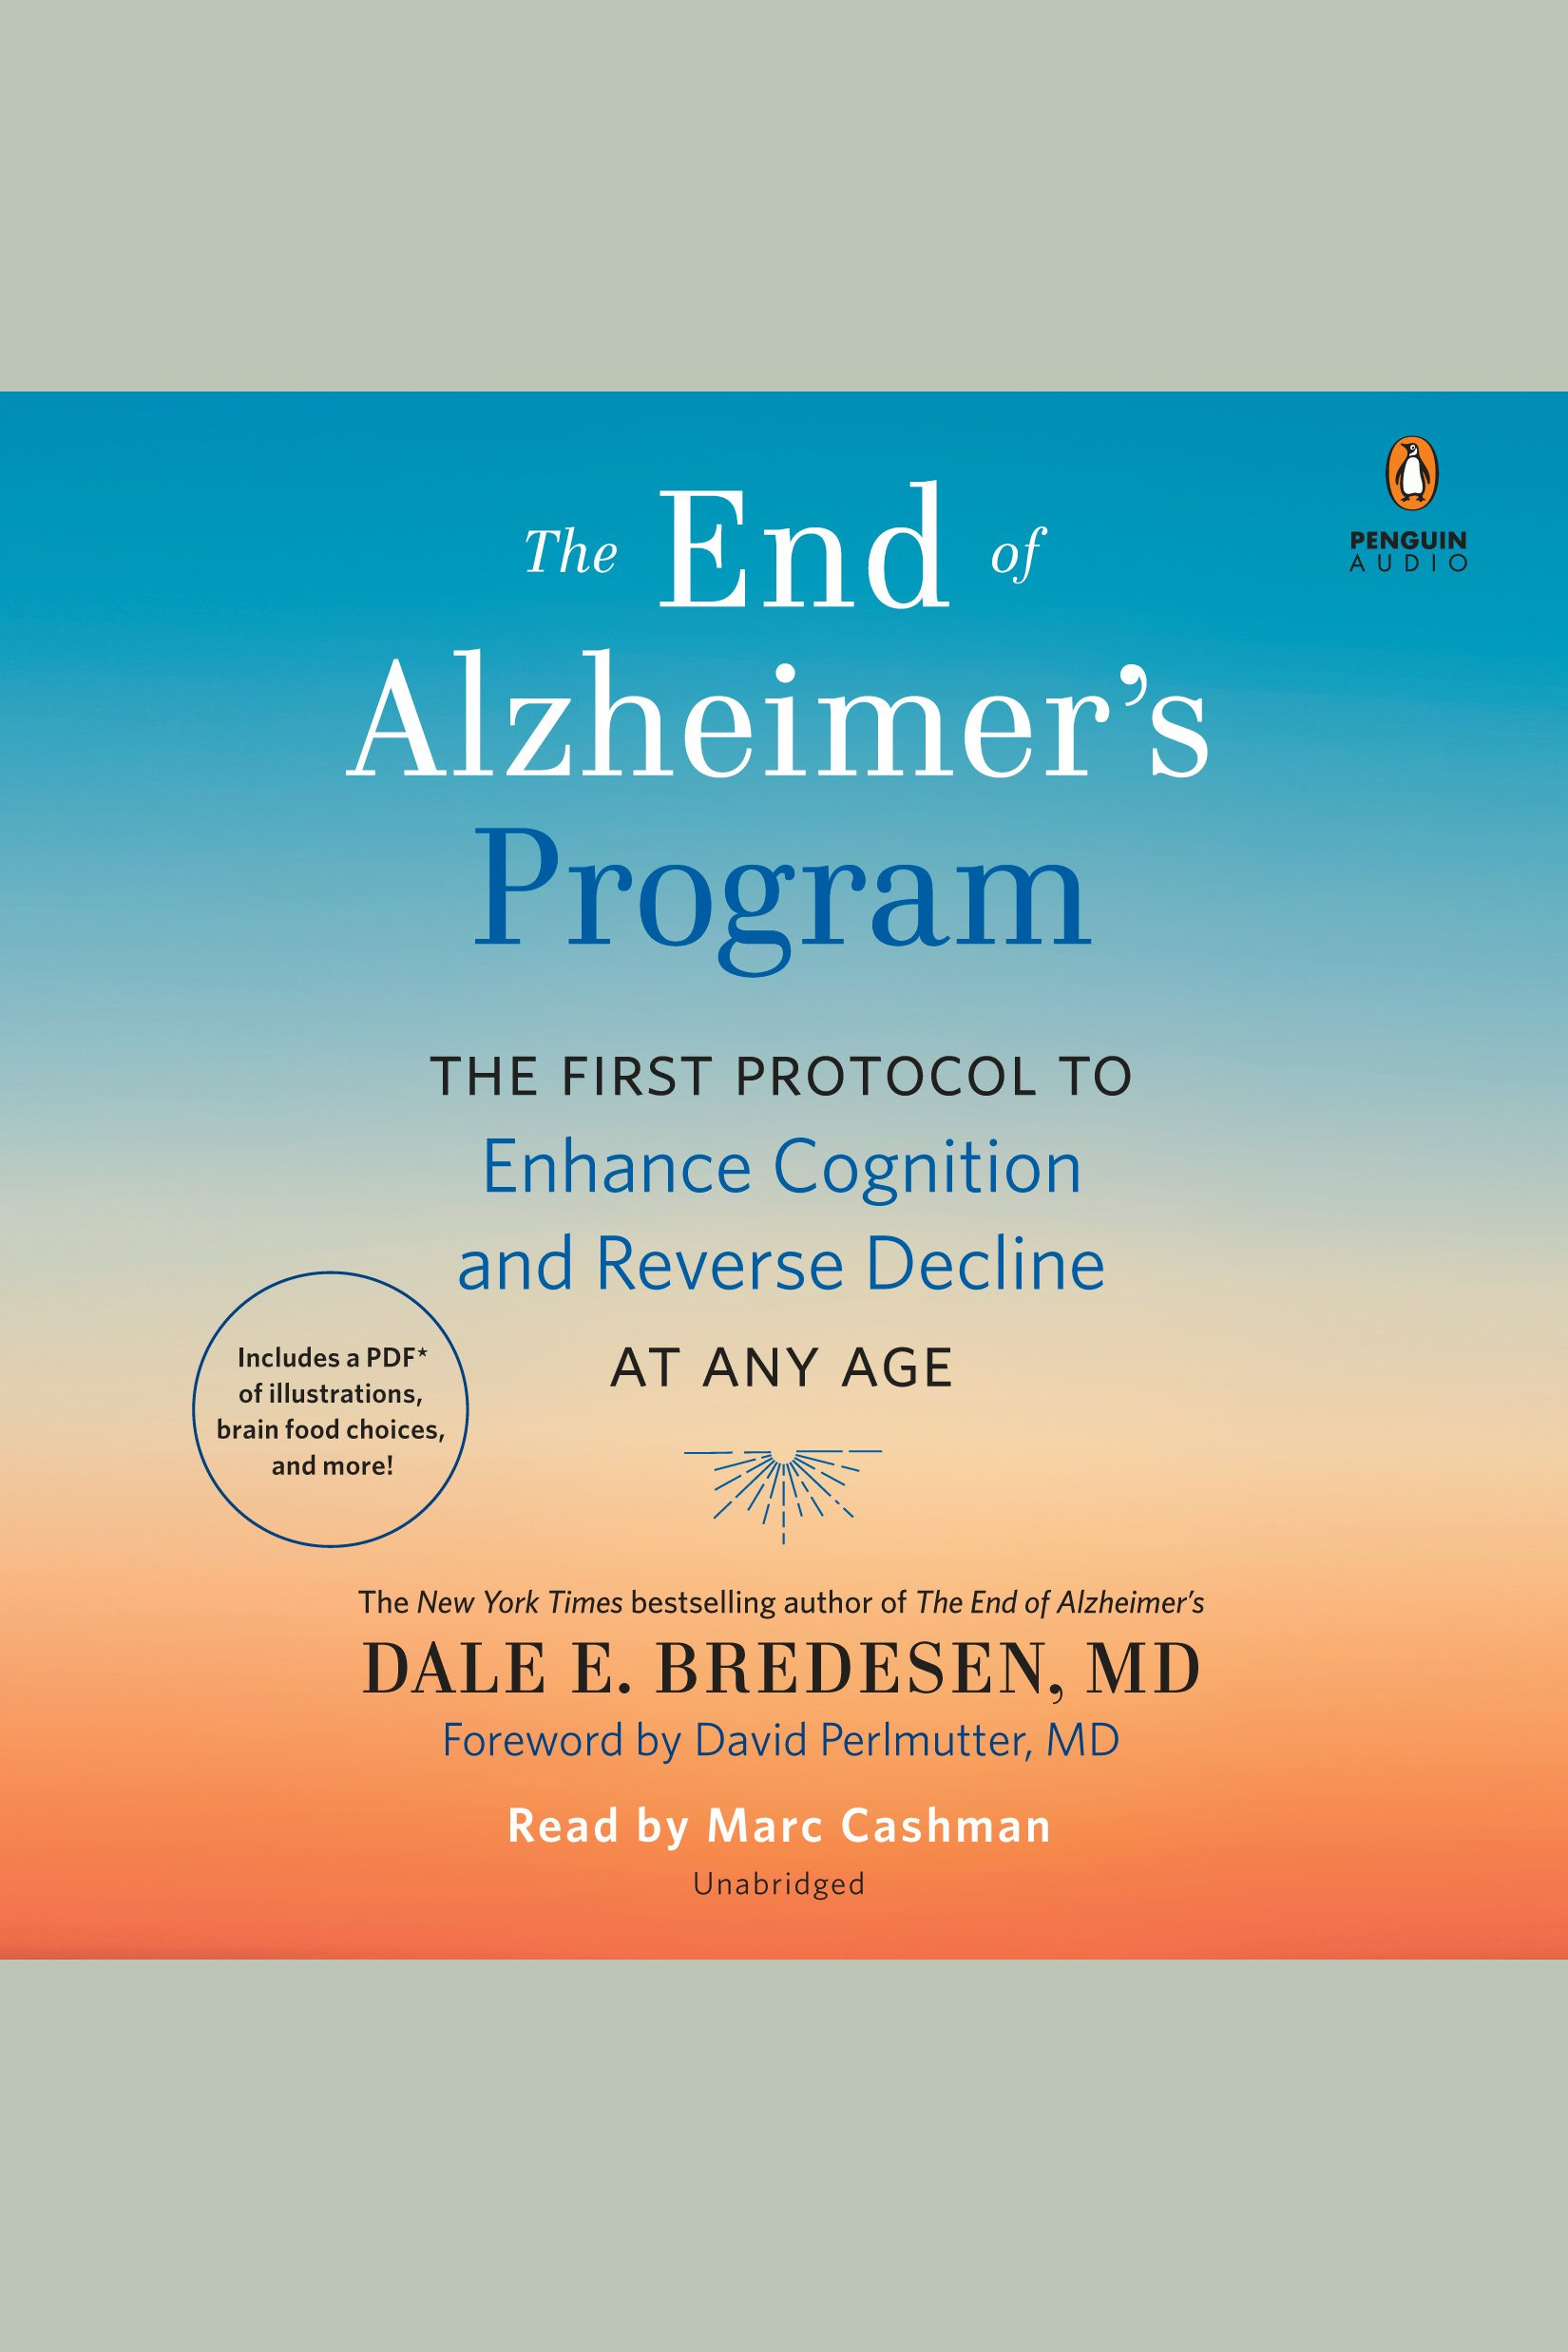 End of Alzheimer's Program, The The First Protocol to Enhance Cognition and Reverse Decline at Any Age